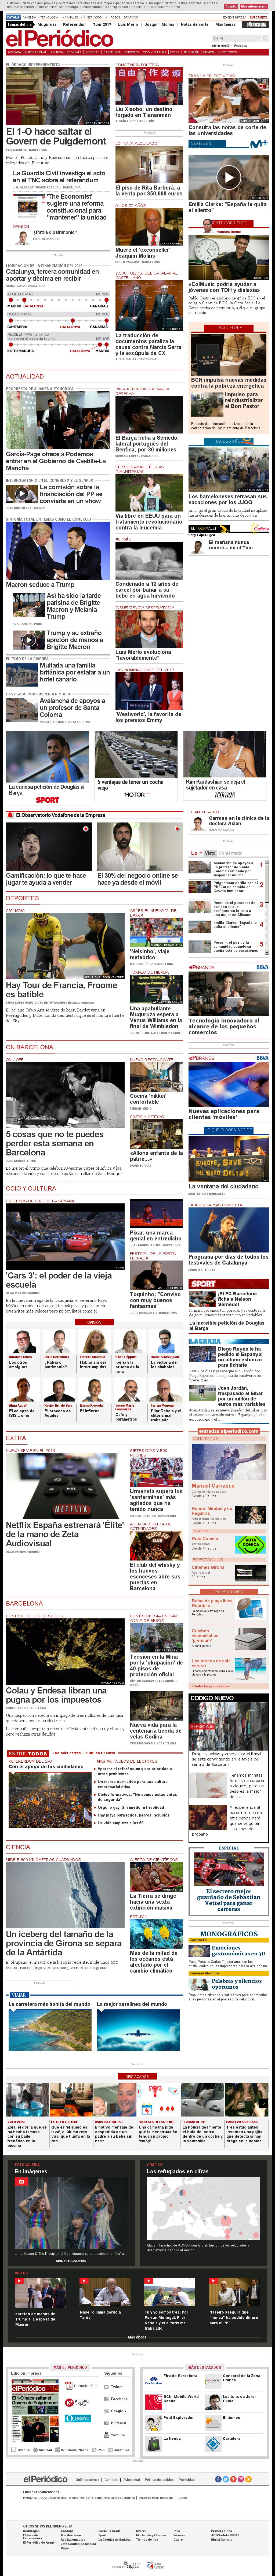 El Periodico at Friday July 14, 2017, 5:13 a.m. UTC